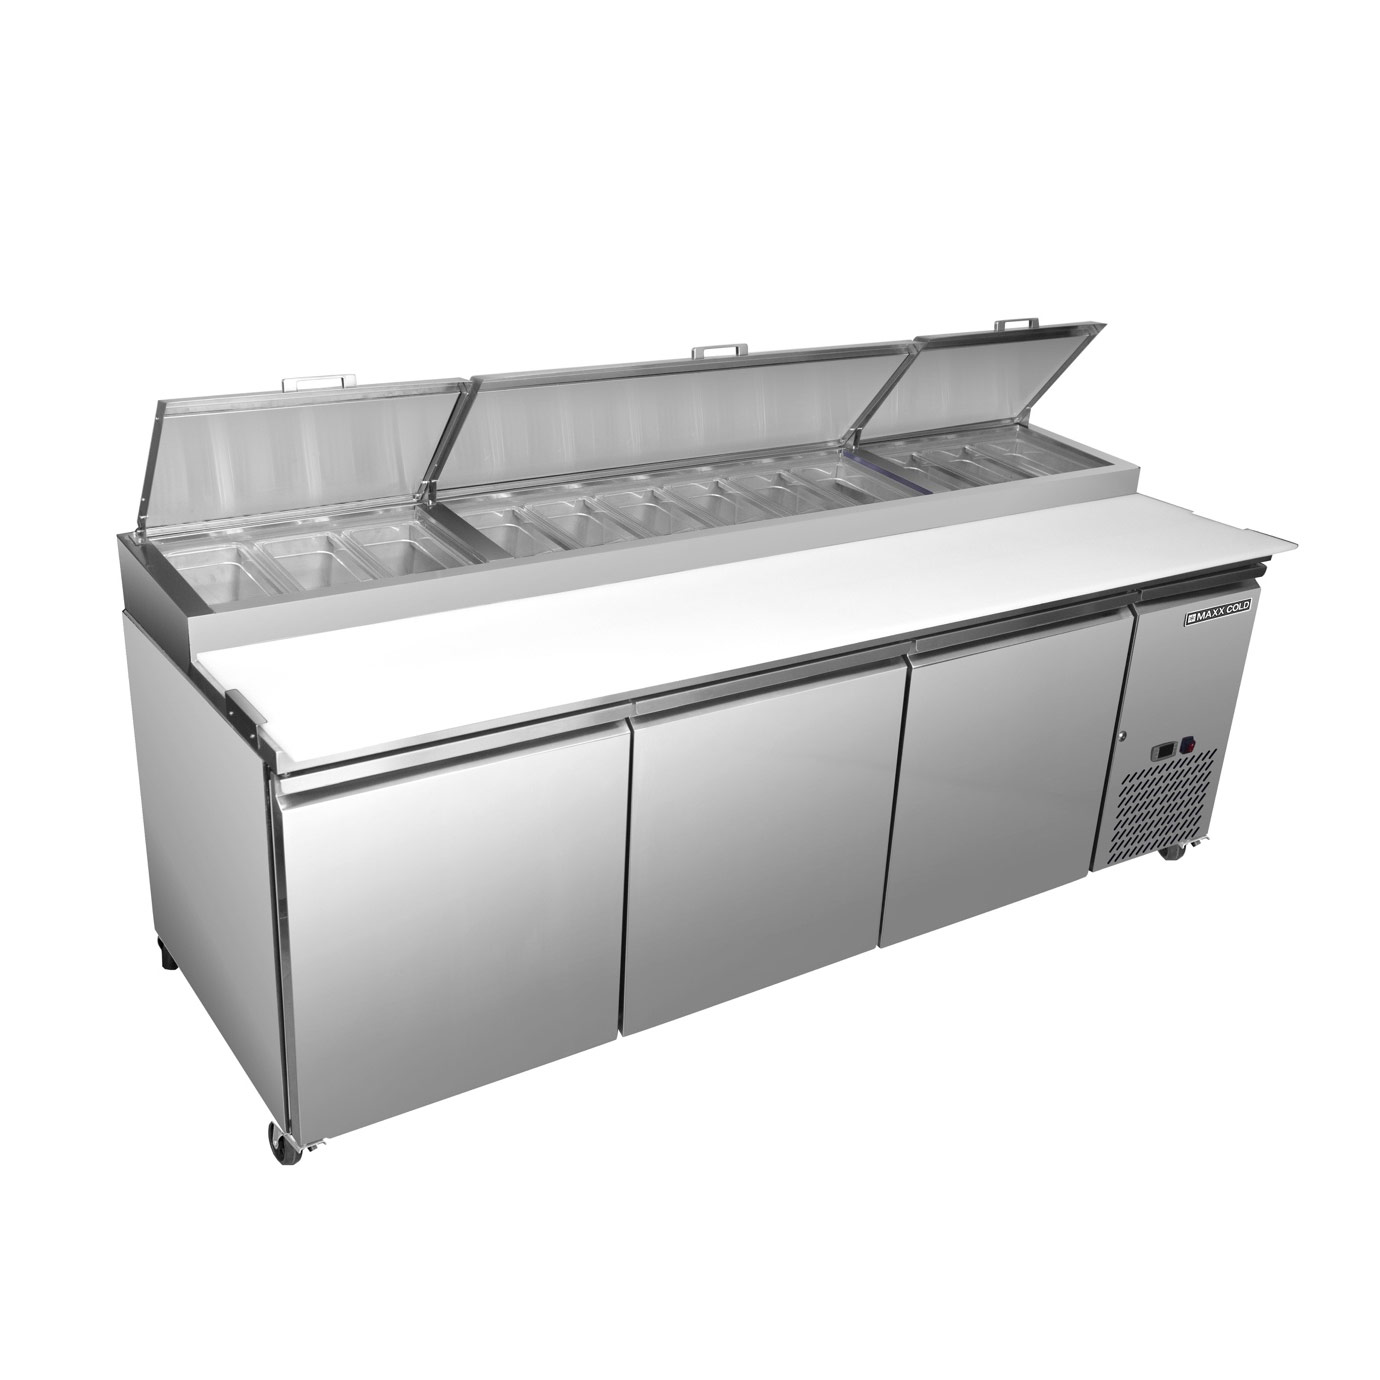 Maxximum MXSPP92 refrigerated counter, pizza prep table